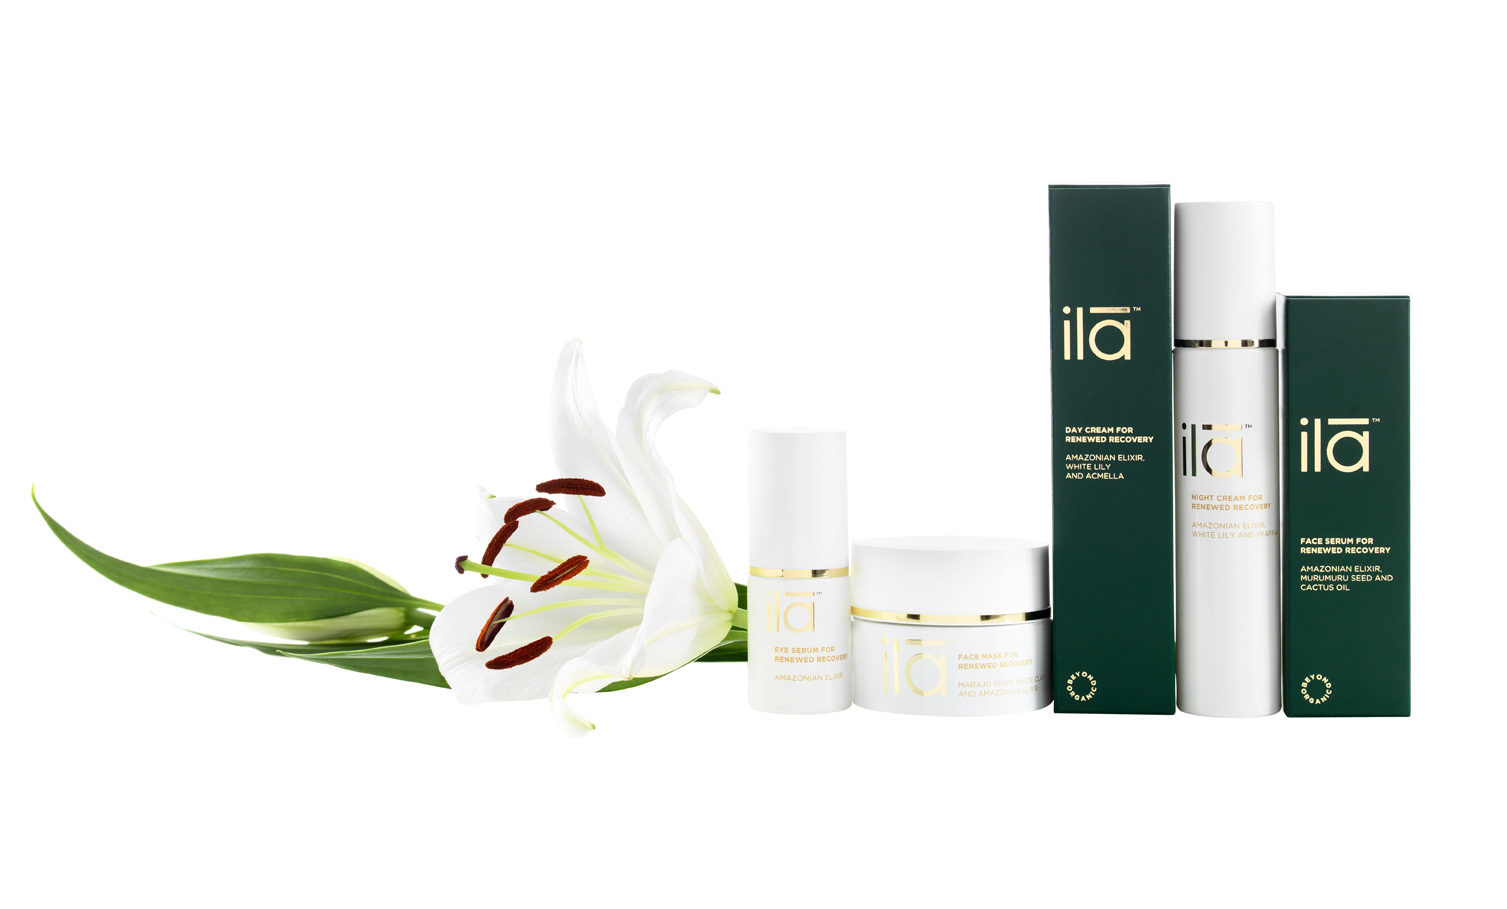 ila-spa-orchid-recovery